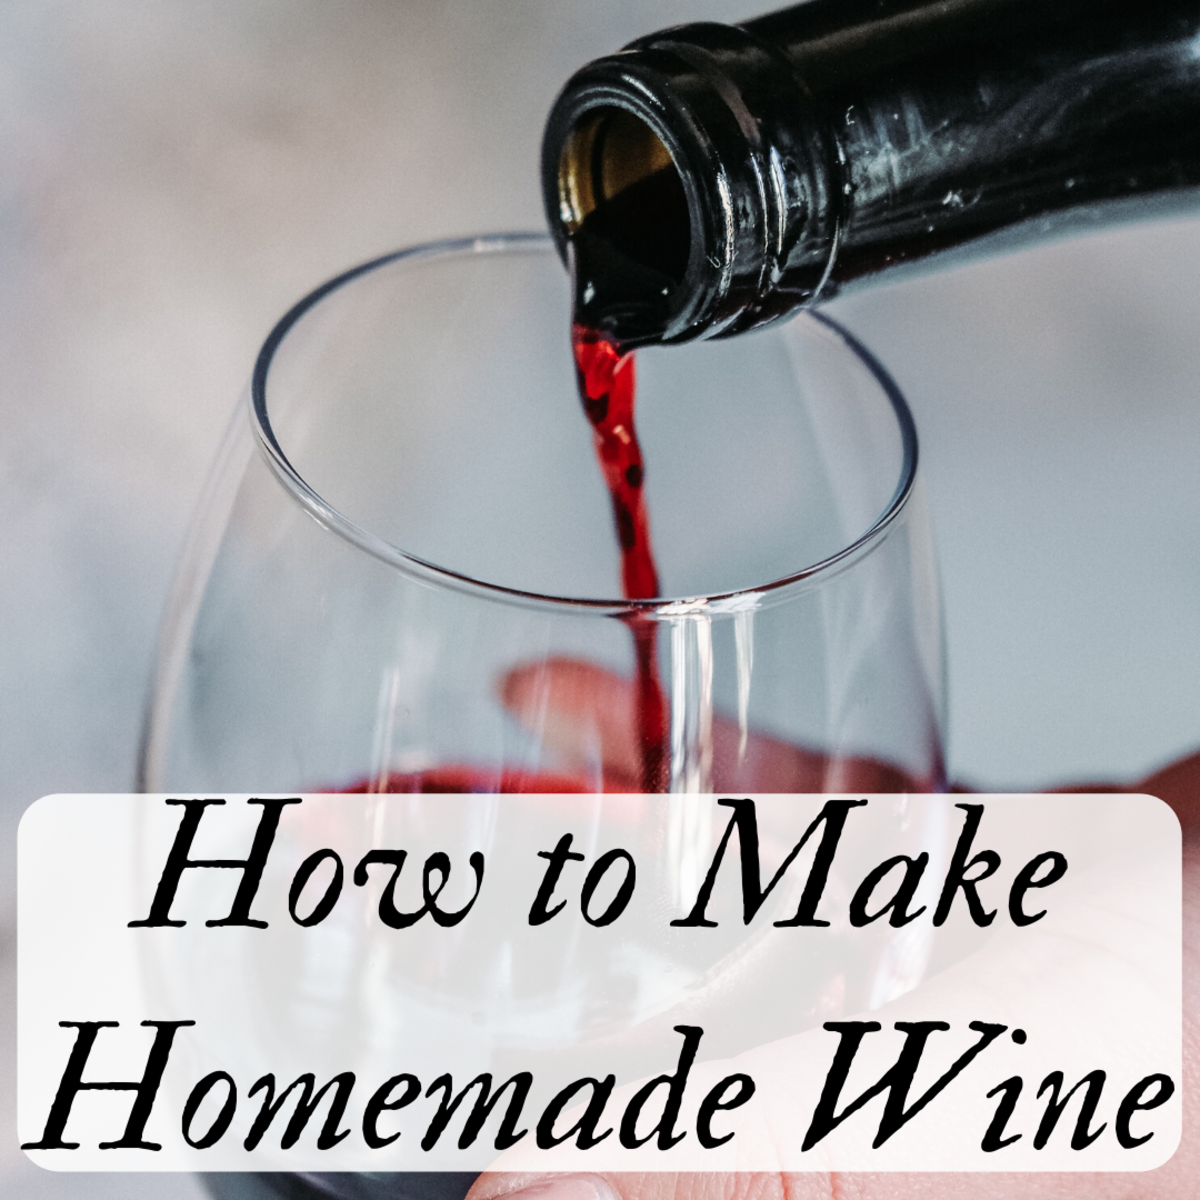 Making wine at home is easier than you think! Read on to learn how you can make your own red or white wine at home.